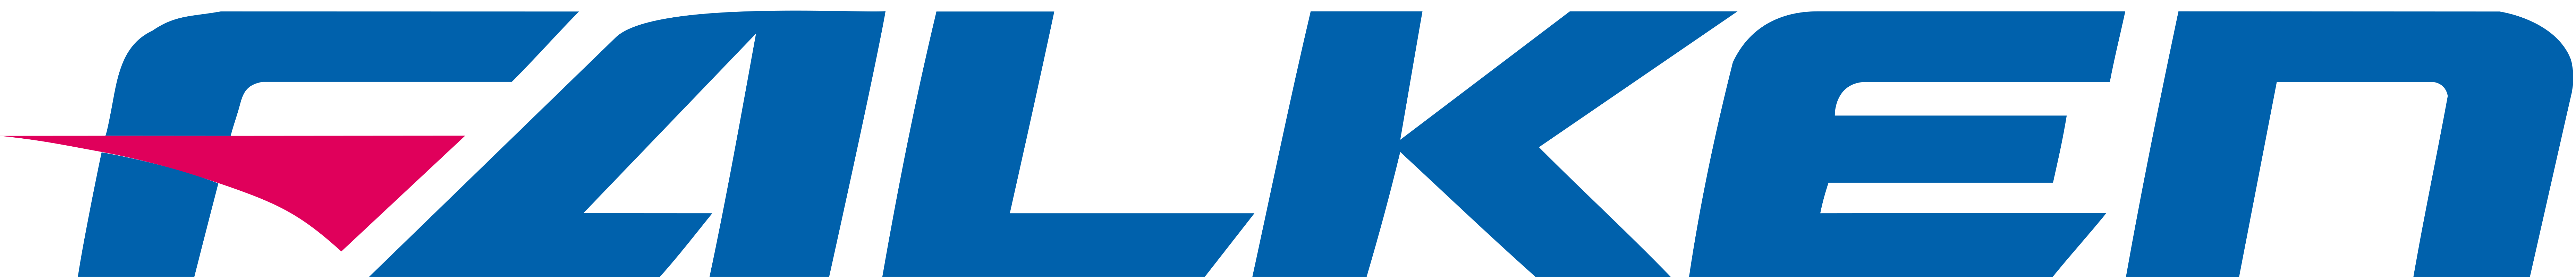 Falken tires logo png. Tyres india to whomsoever